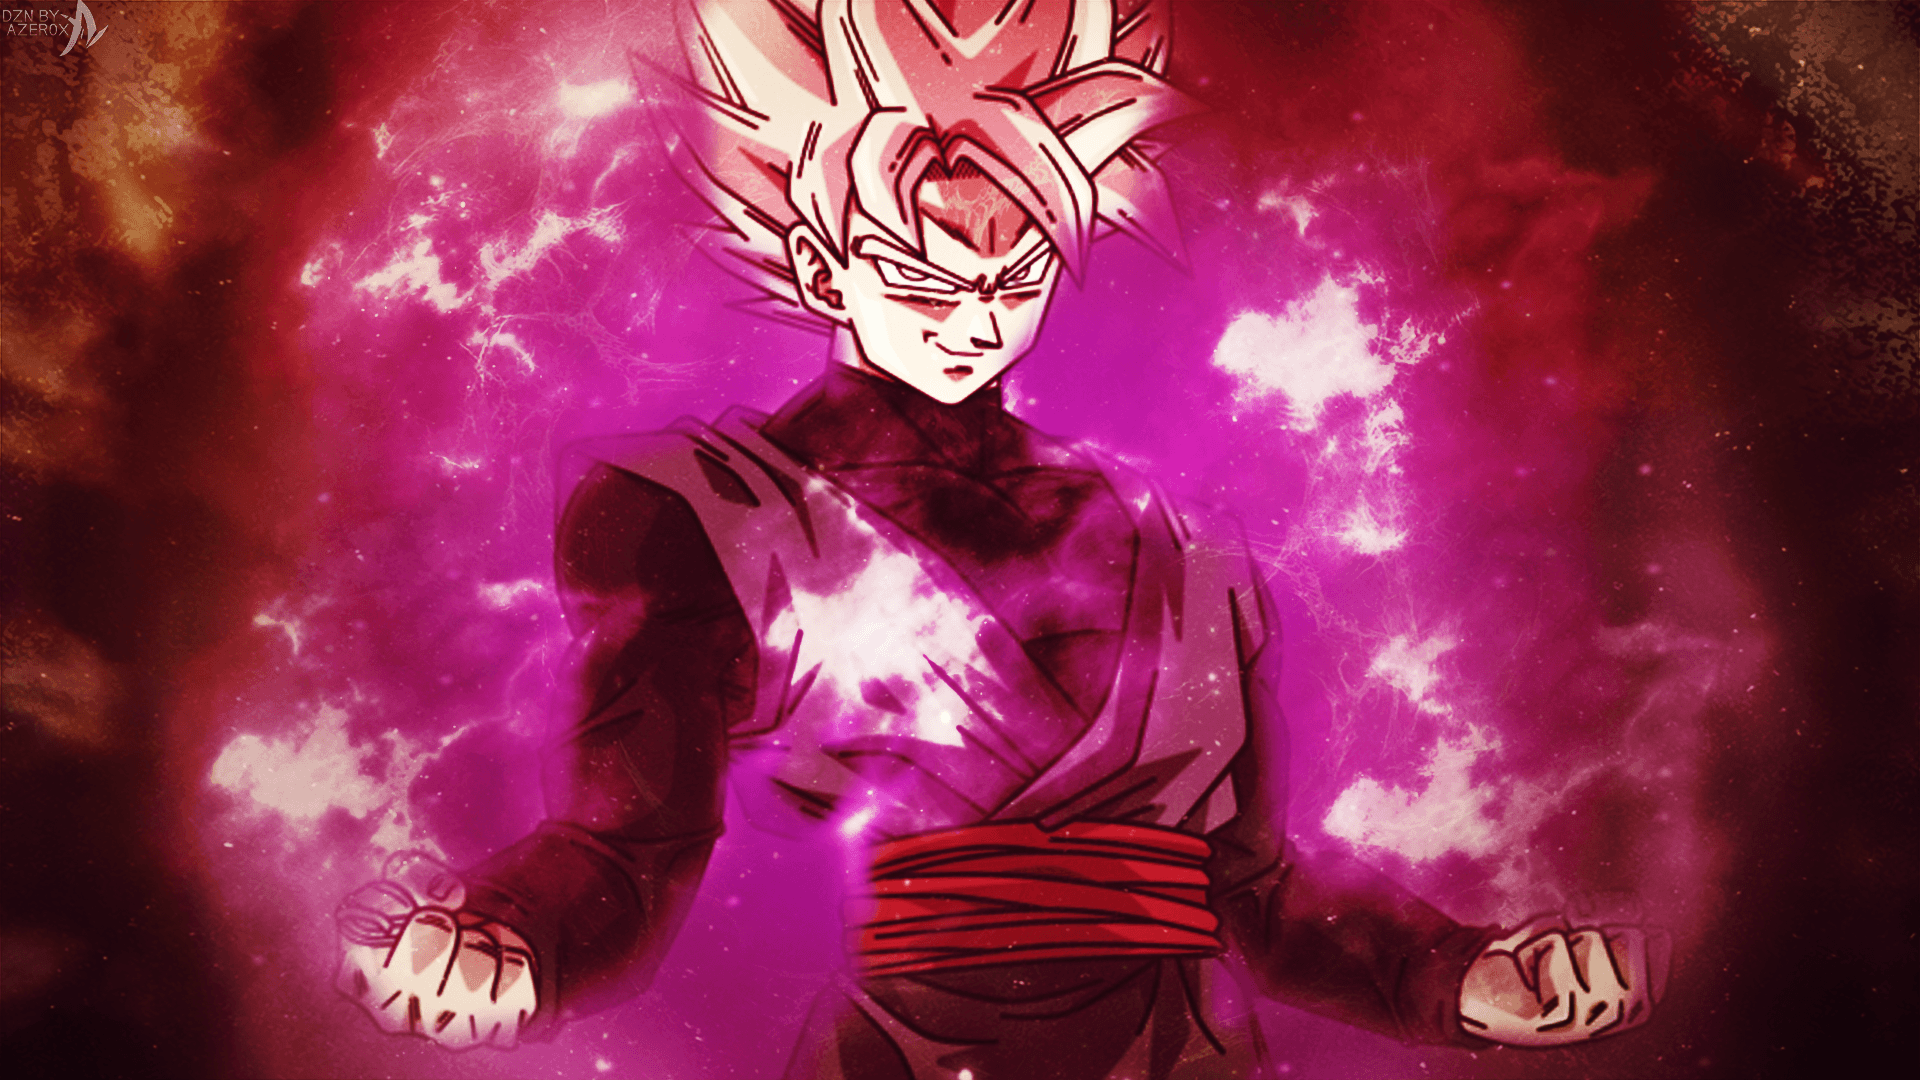 Super Saiyan Rose Goku Black Wallpaper: Goku Black Rose Wallpapers